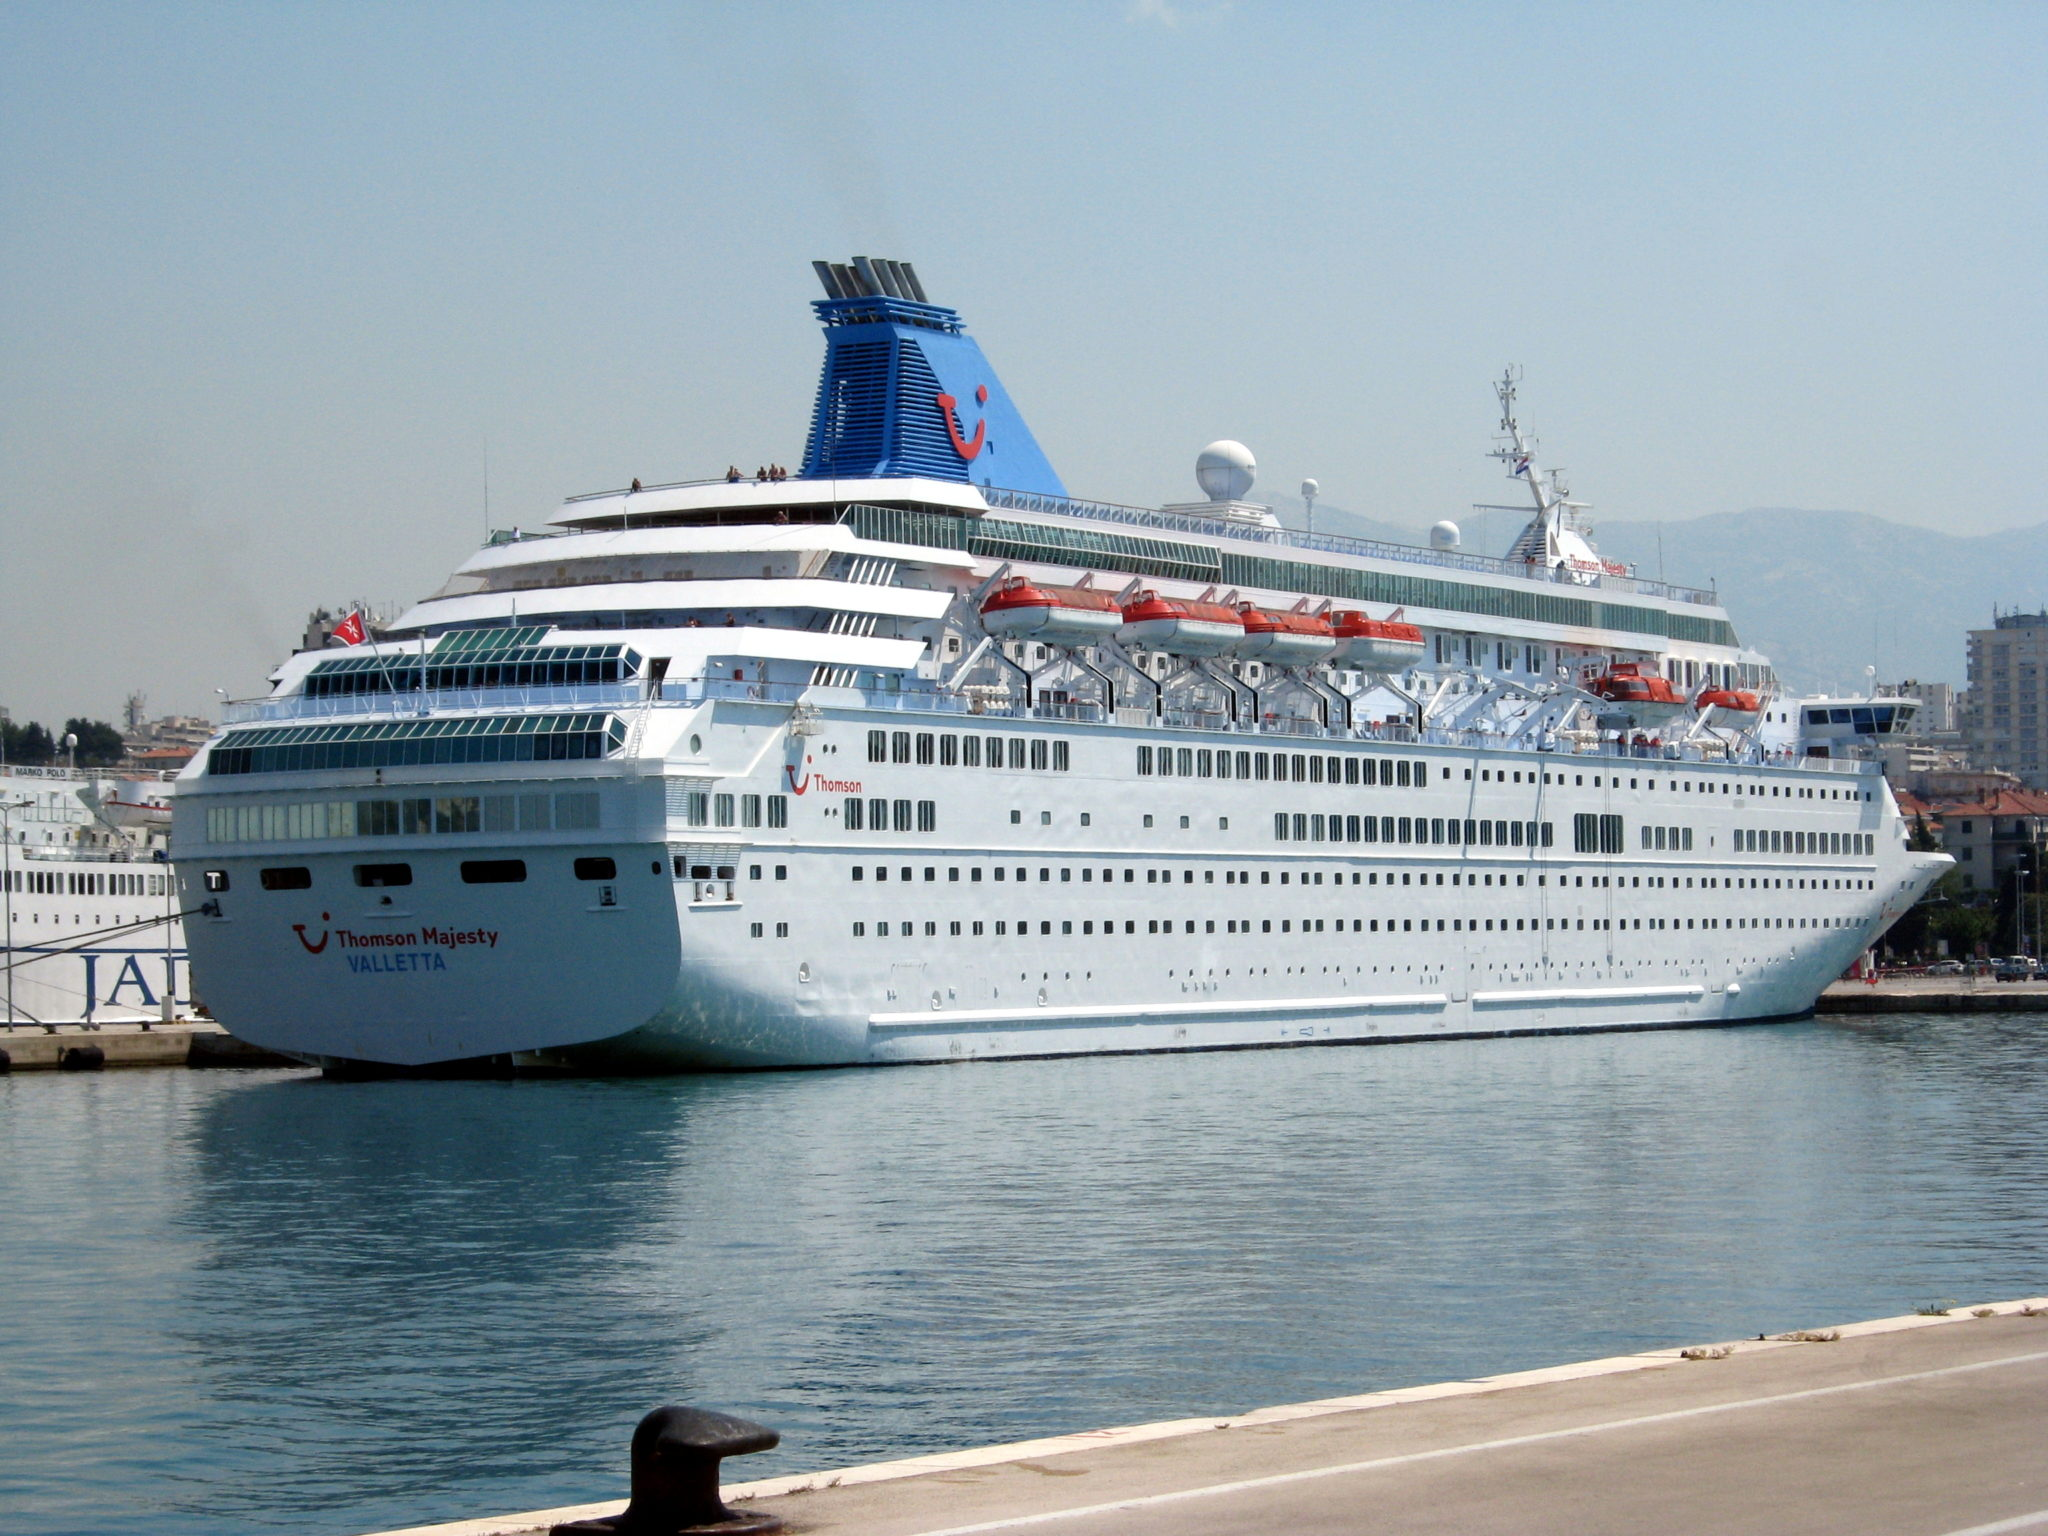 Cruise line safety - Assignment Example